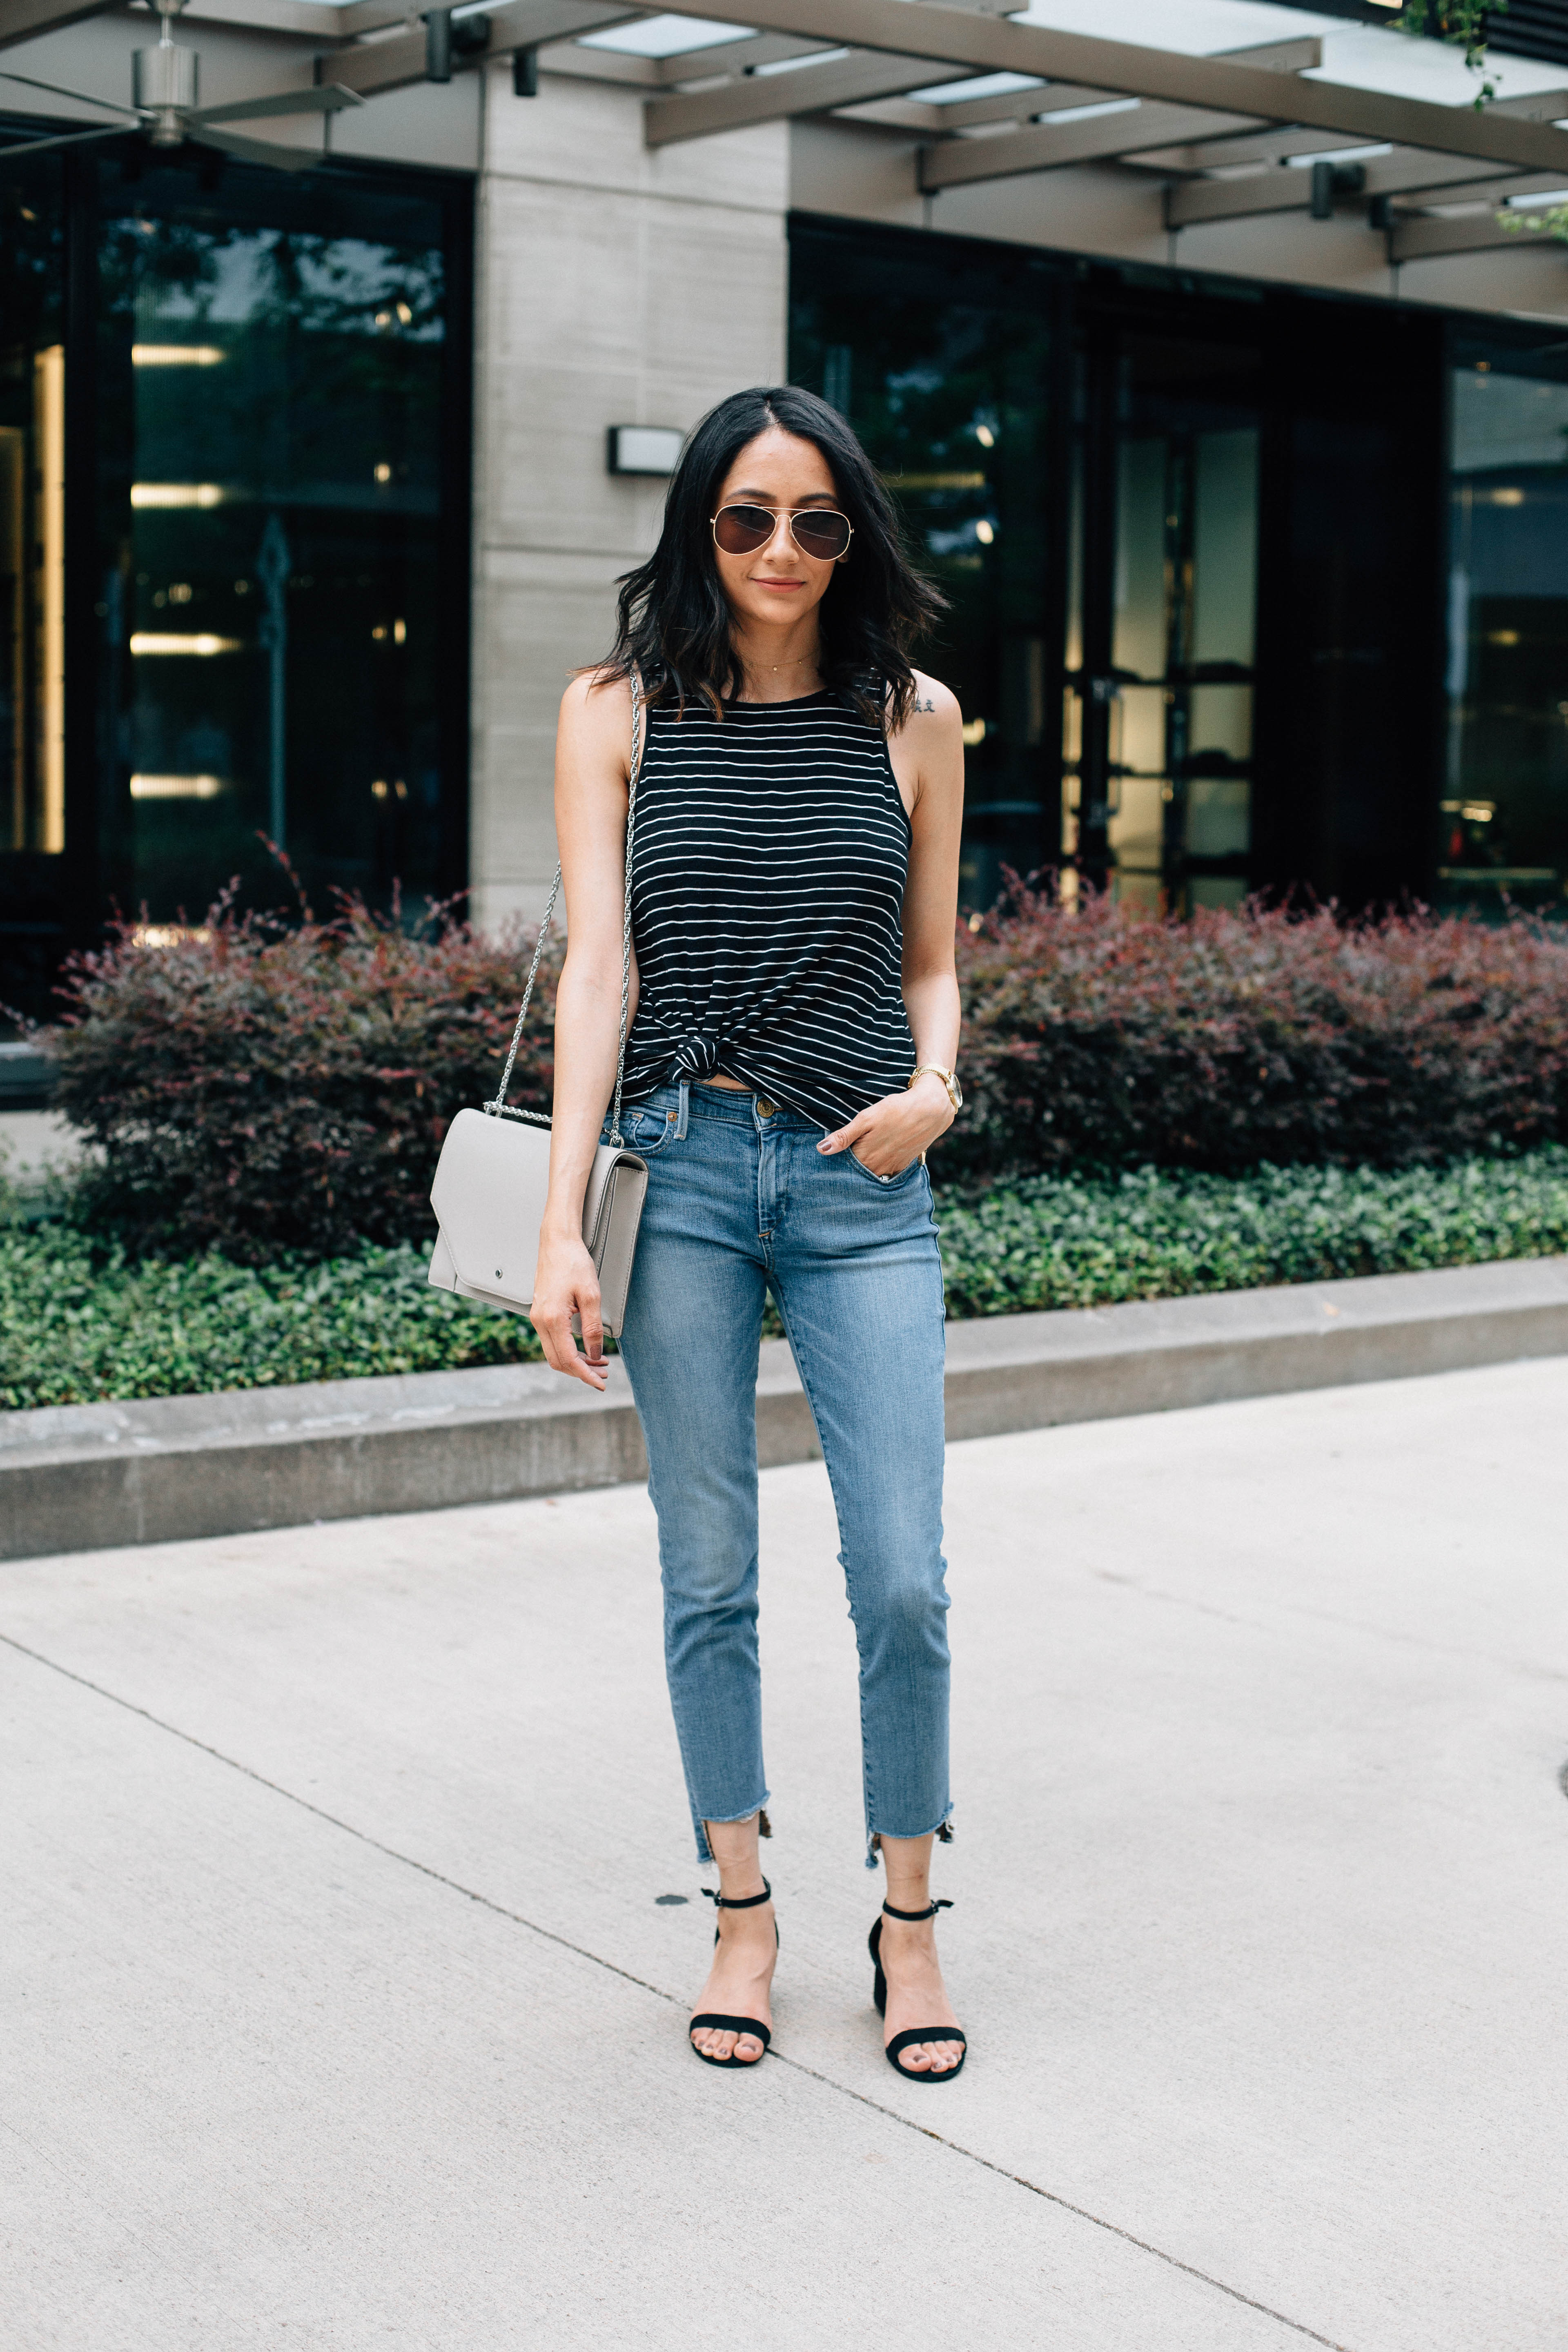 The best fashion diy on the internet. Raw hem jeans and striped top. Minimal. Effortless style.